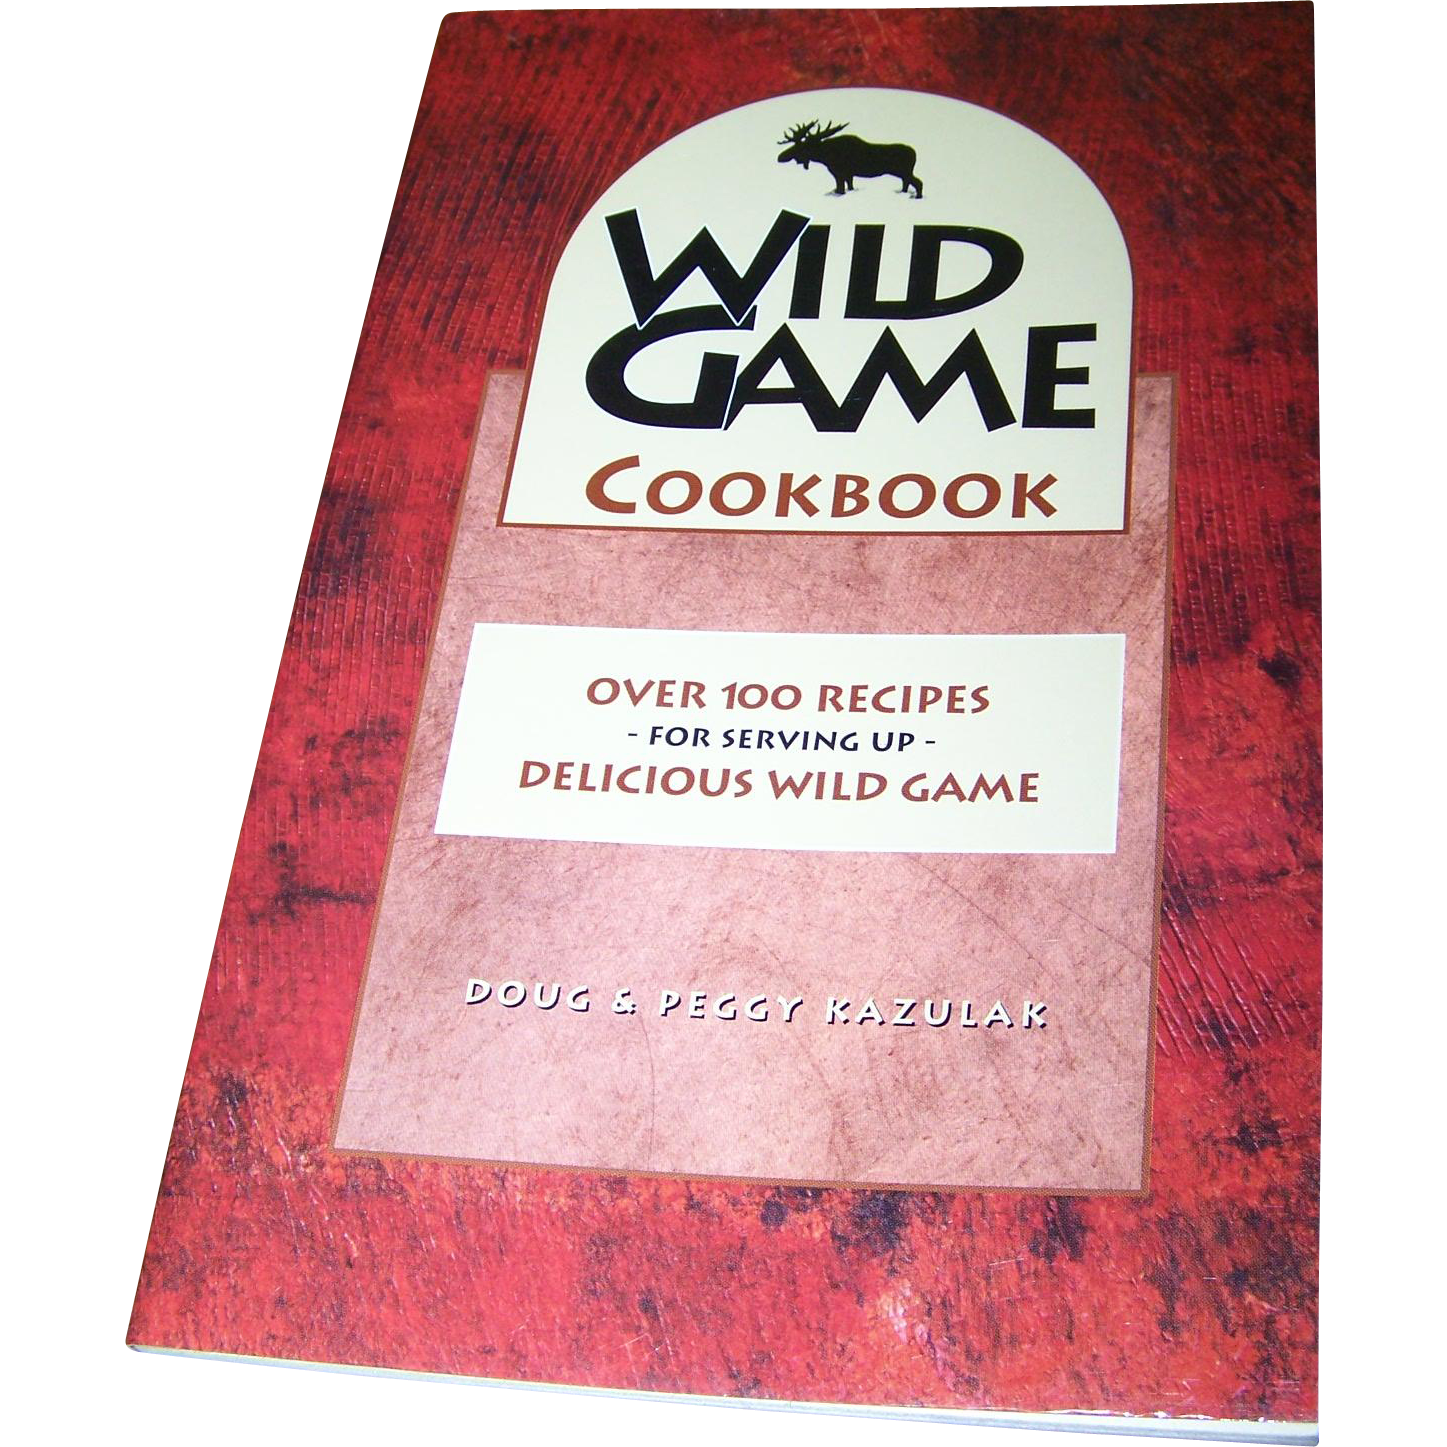 Paperback Wild Game CookBook Over 100 Recipes Lone Pine Publishing